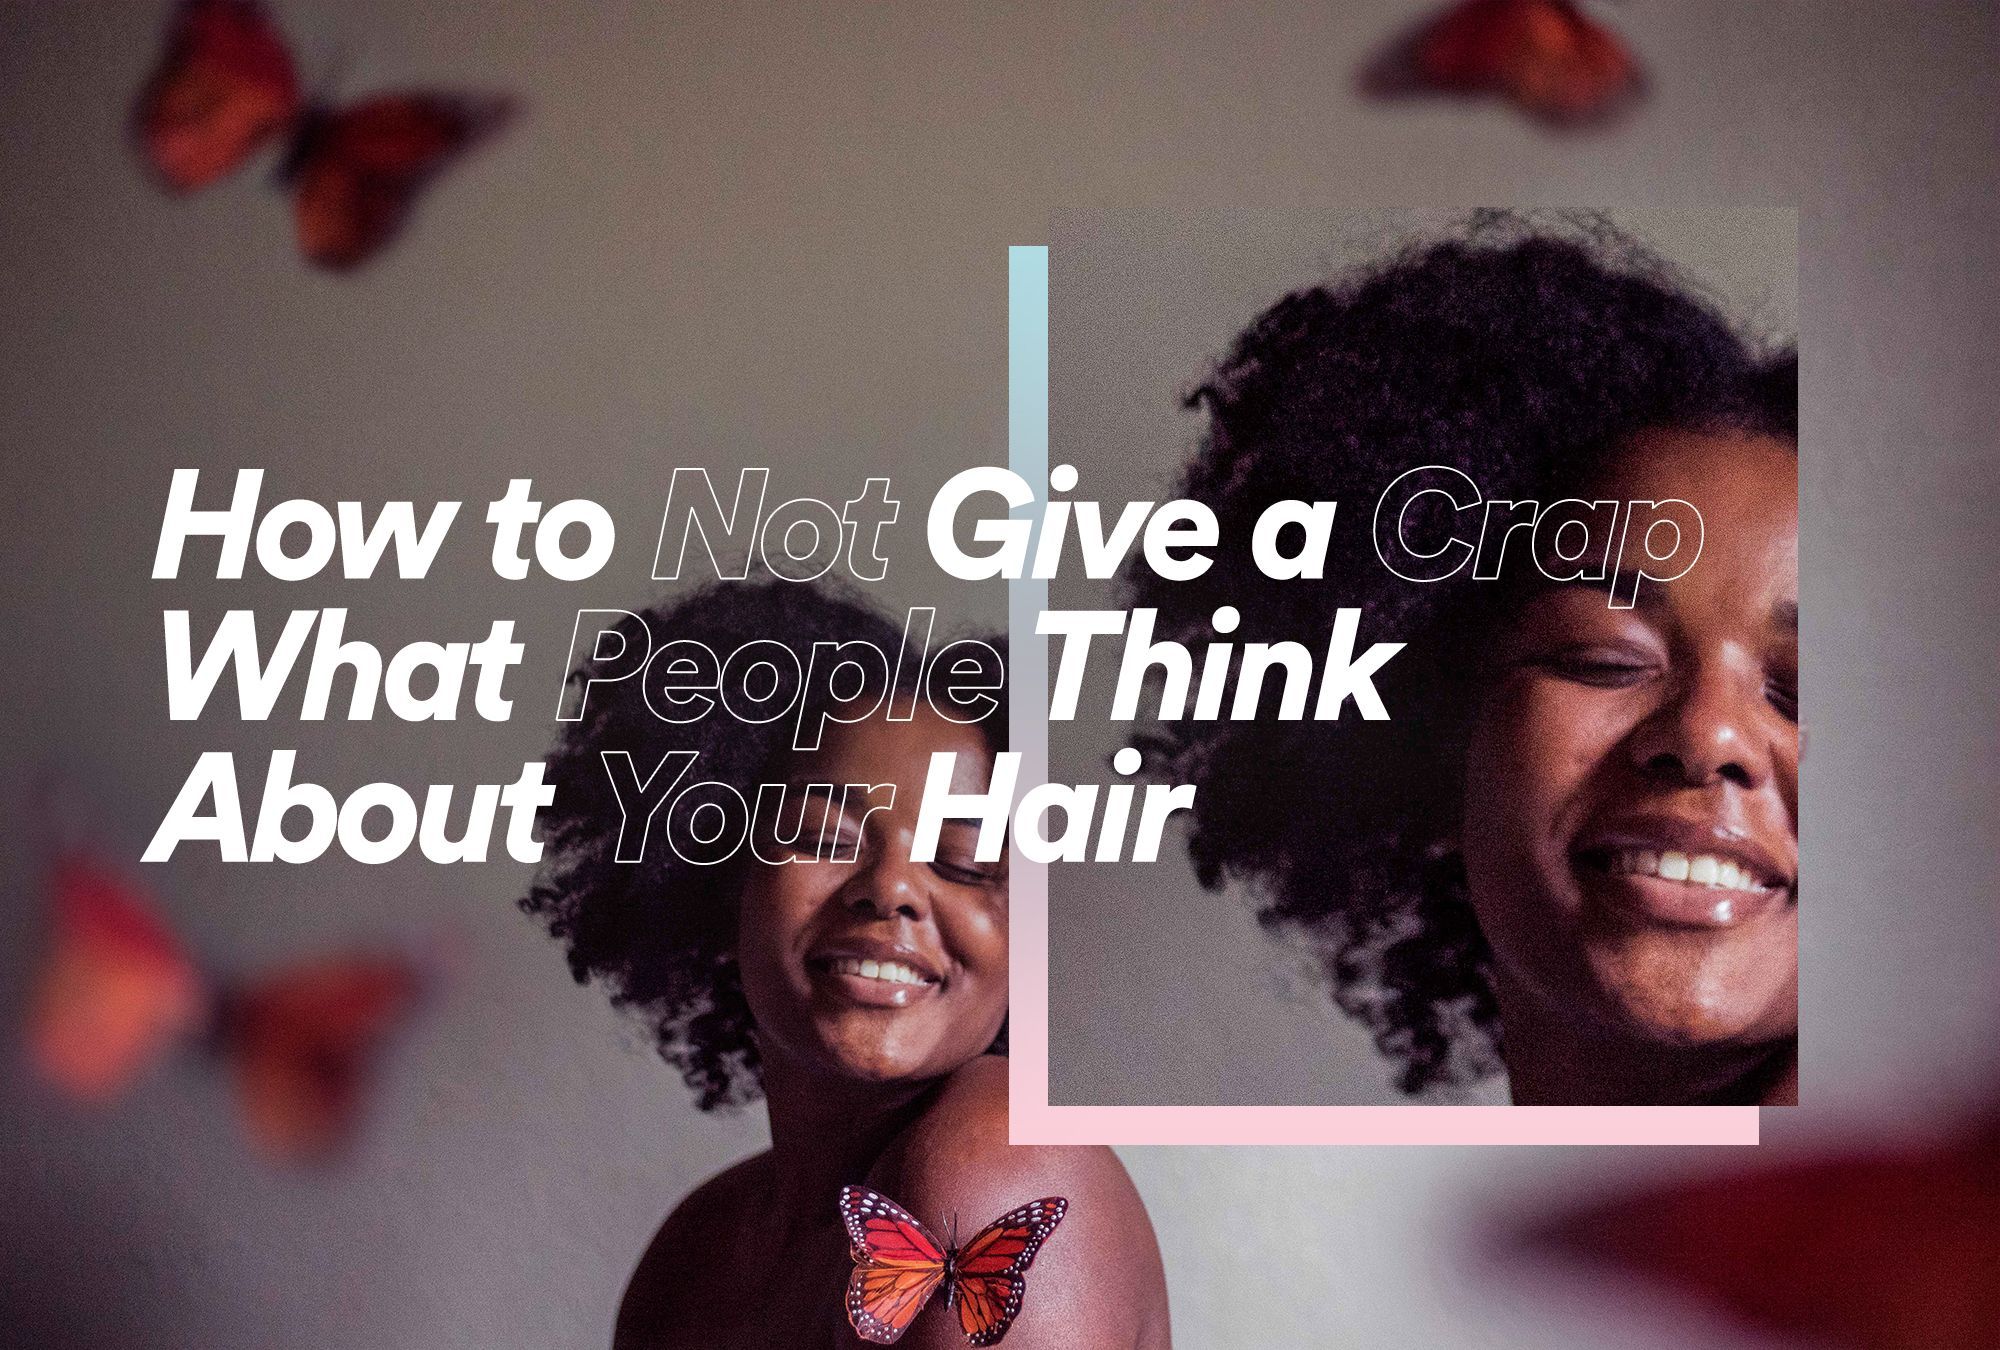 How to Not Give a Crap What People Think About Your Hair